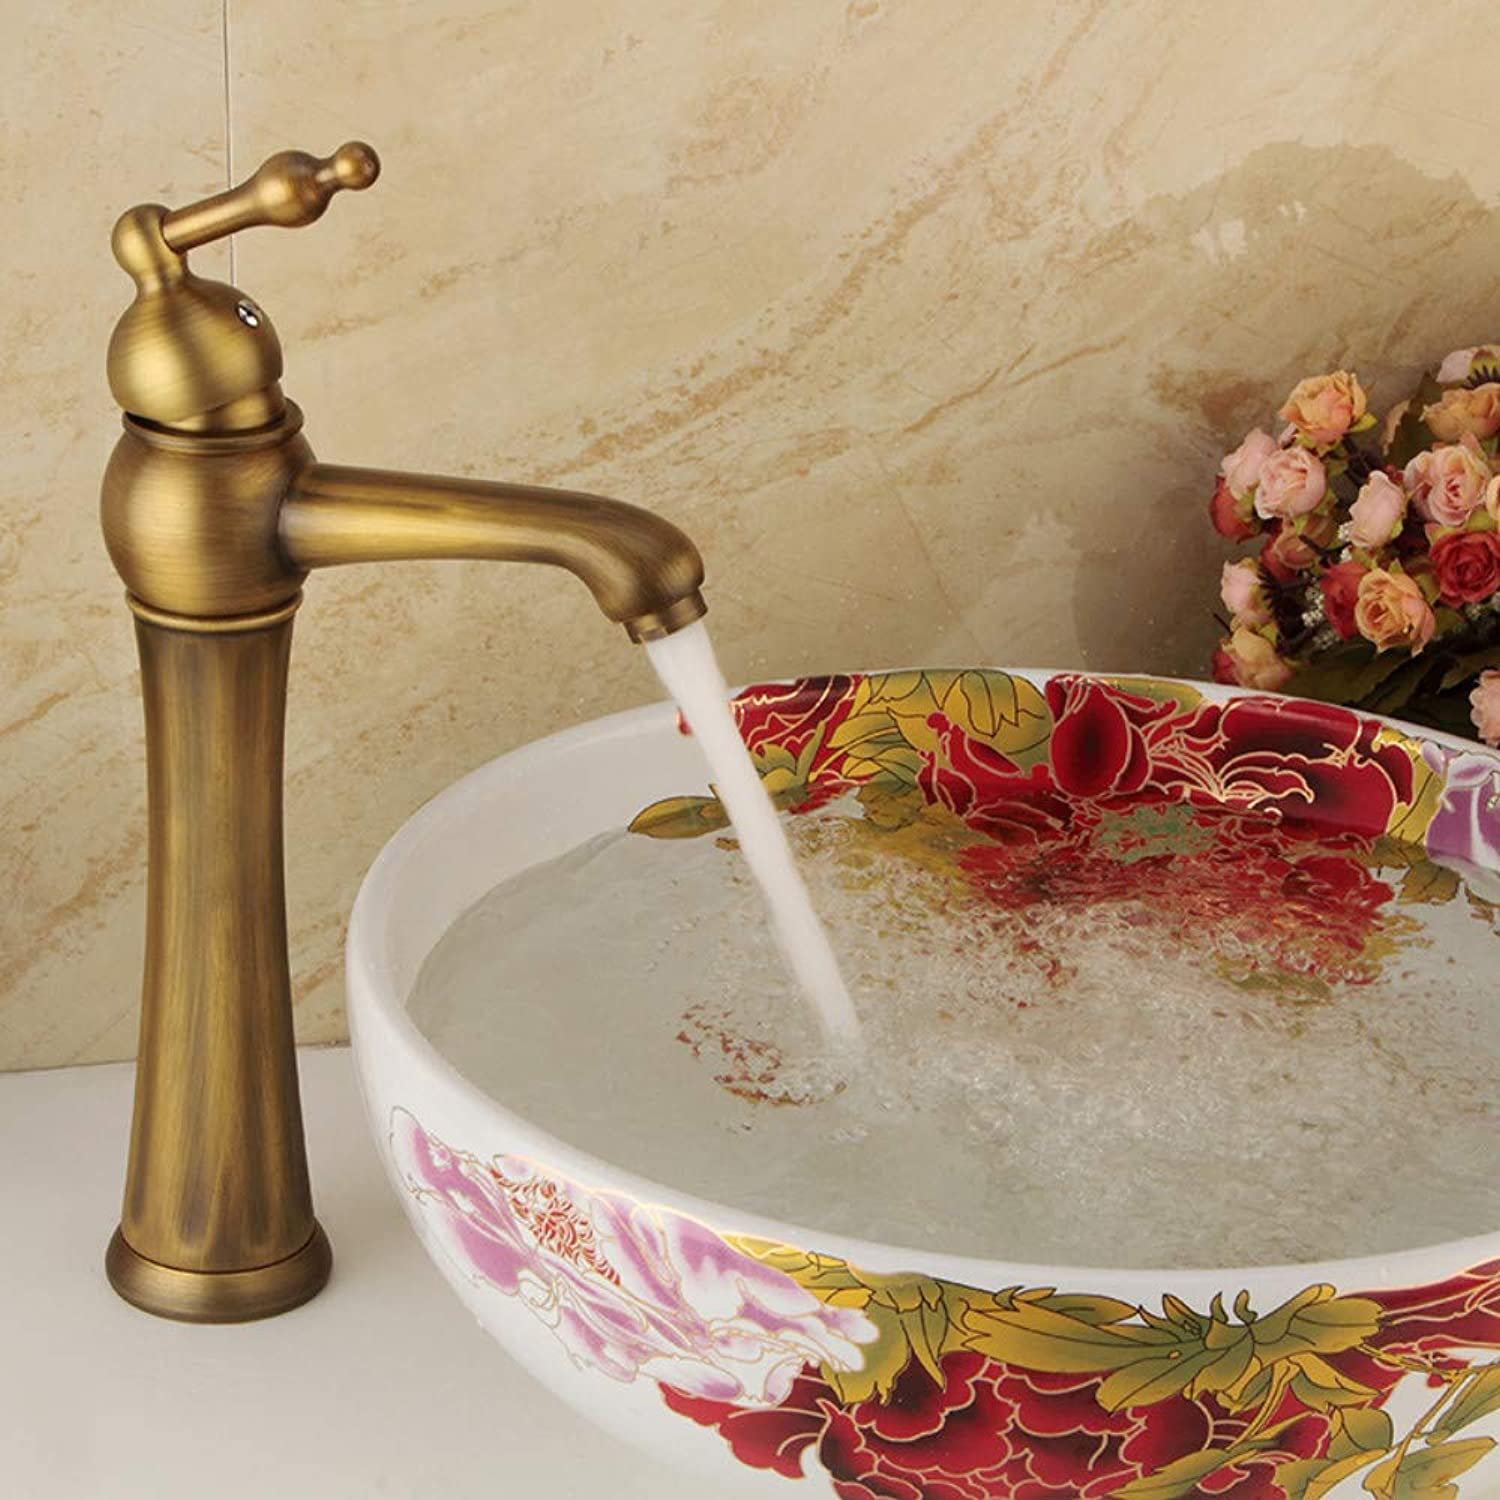 Bathroom Sink Tap Basin Faucets European Antique Single Hole Bathroom Faucets Brass Antique Single Cold and Hot Water Faucets